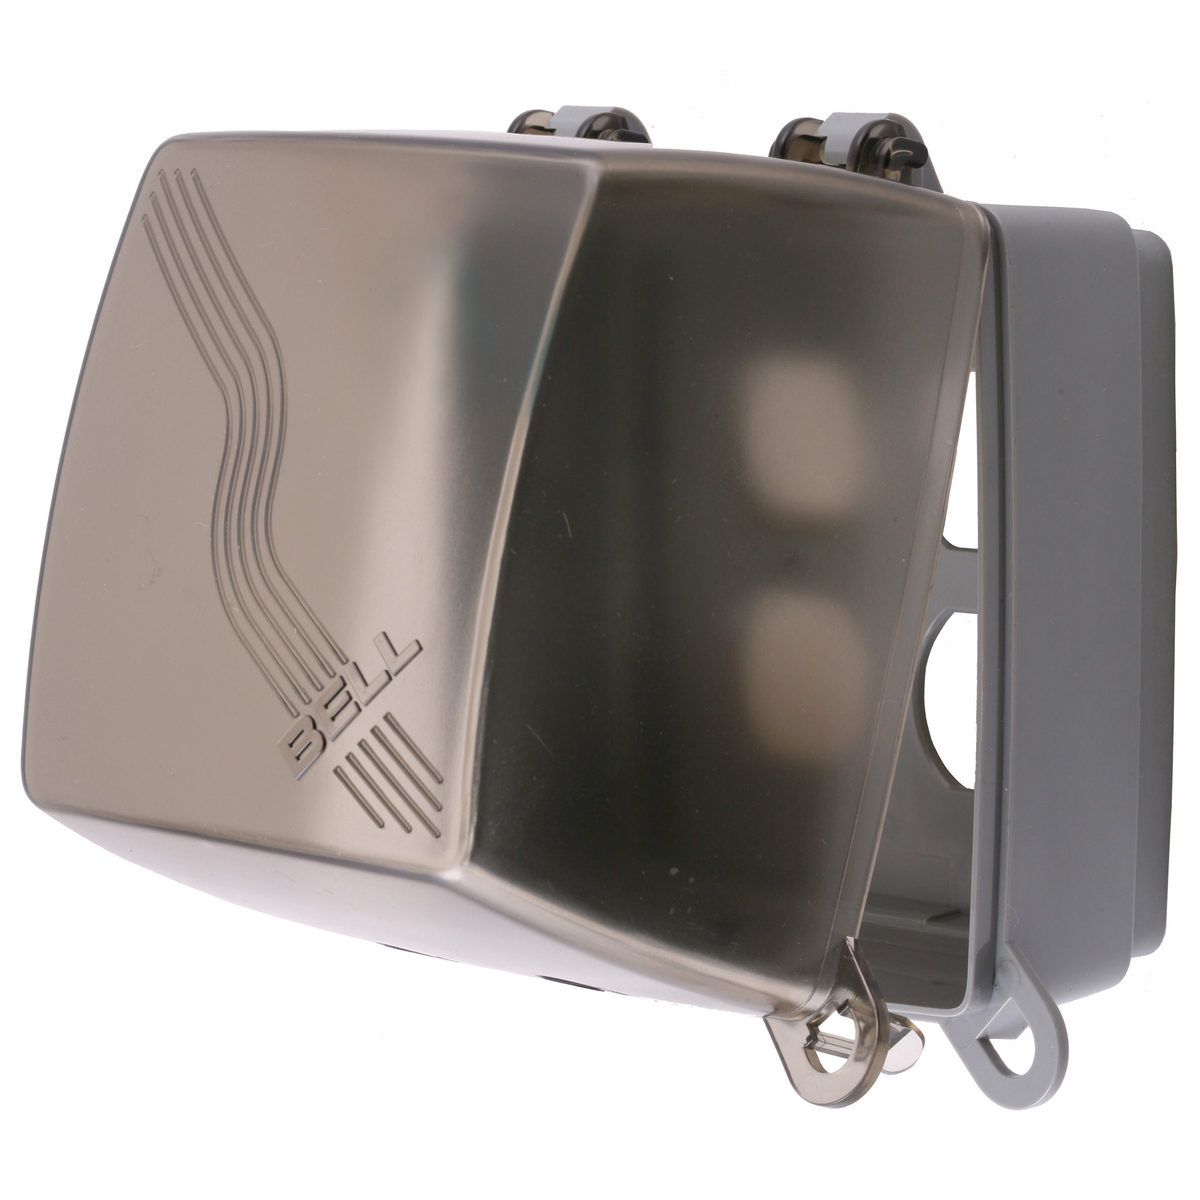 Hubbell RW57900 Electrical Box Cover